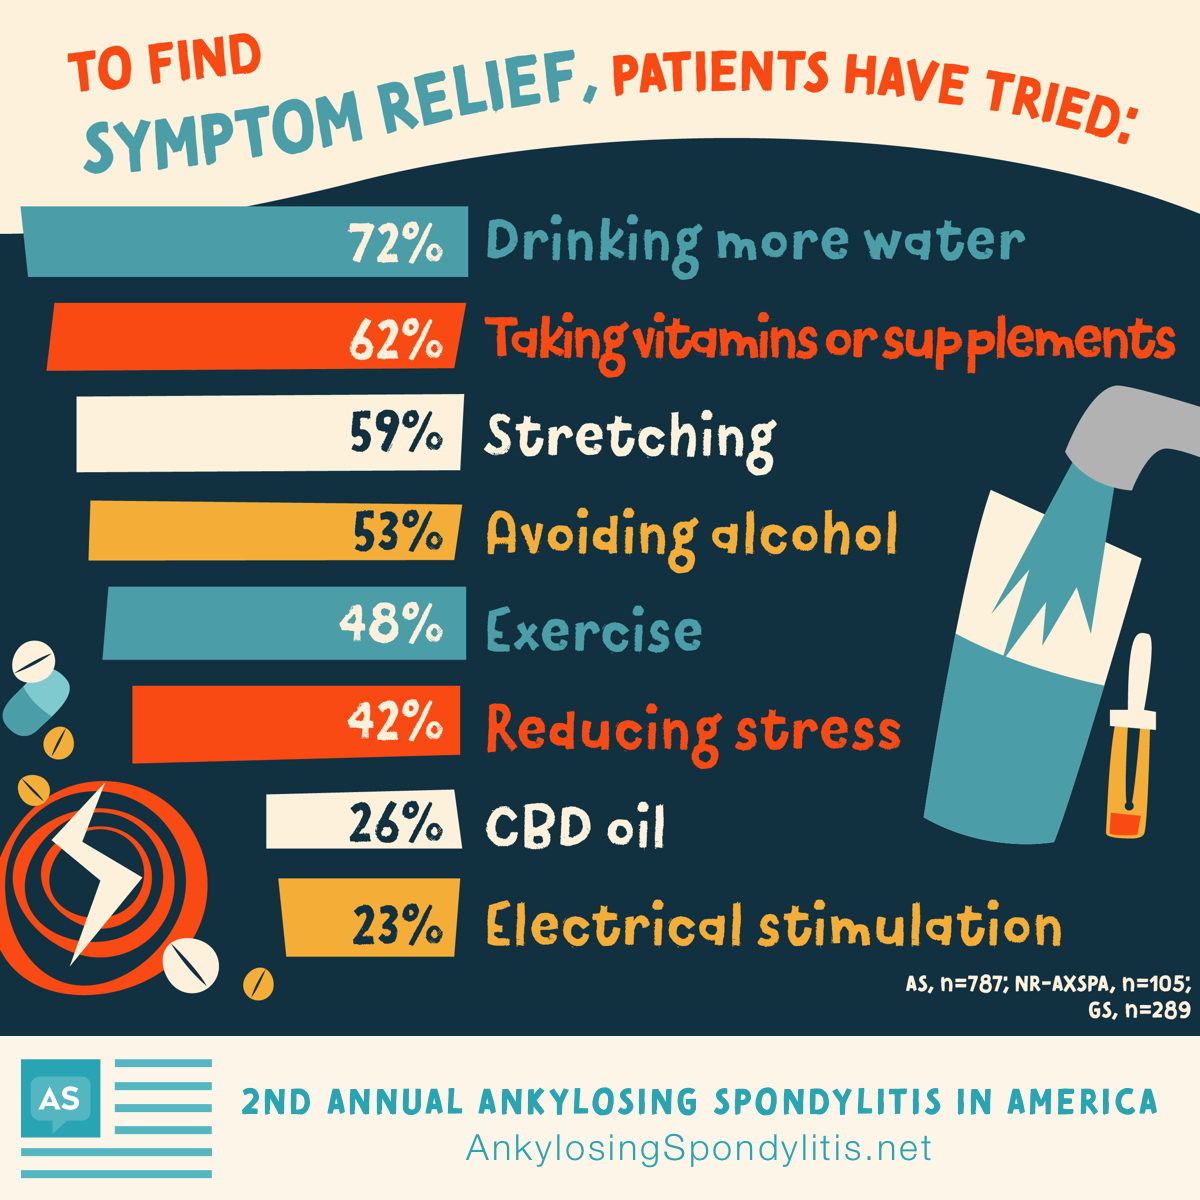 To find symptom relief, patients have tried drinking more water, taking vitamins, stretching, avoiding alcohol, exercise, reducing stress, and CBD oil.